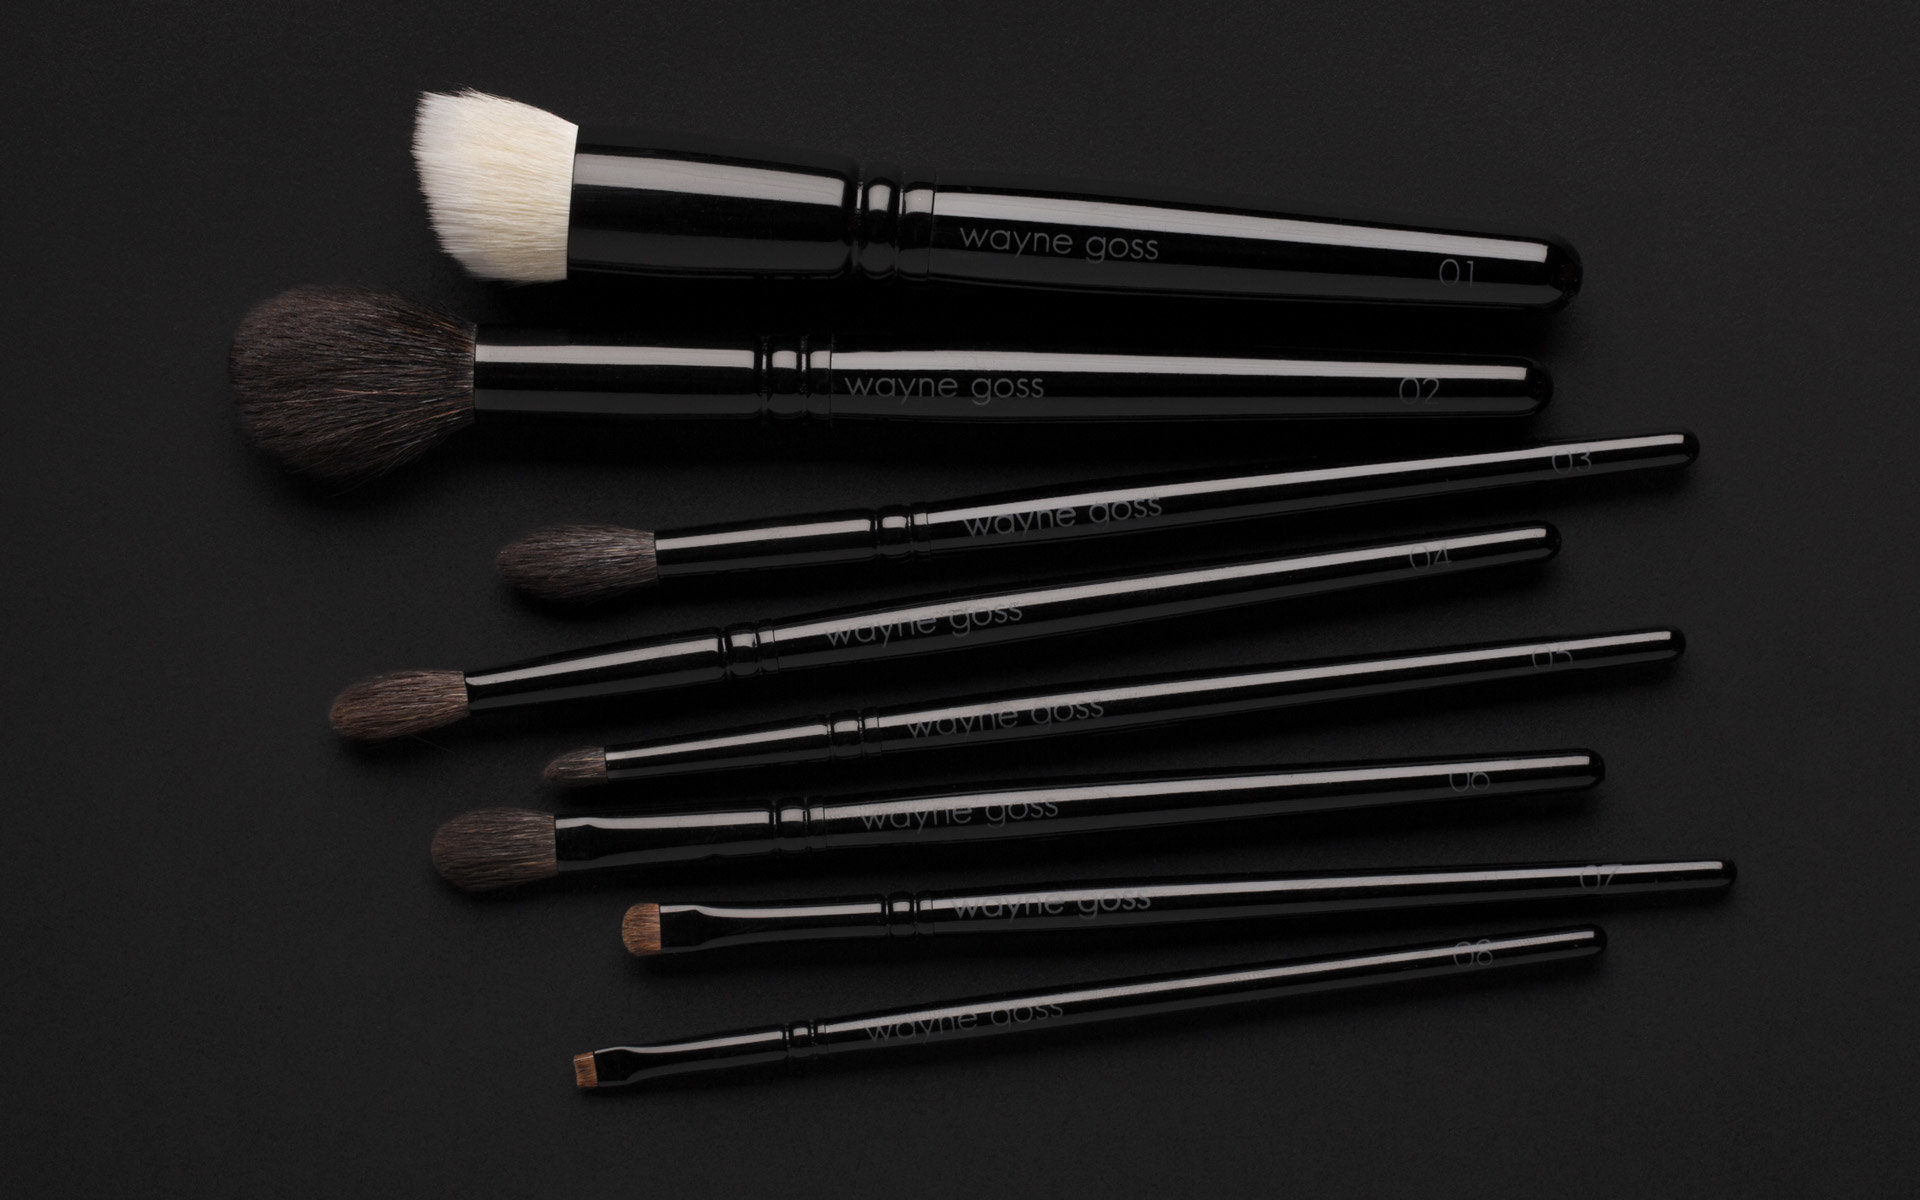 The Wayne Goss Collection, all 8 brushes in the colleciton lying flat showing scale and labels.